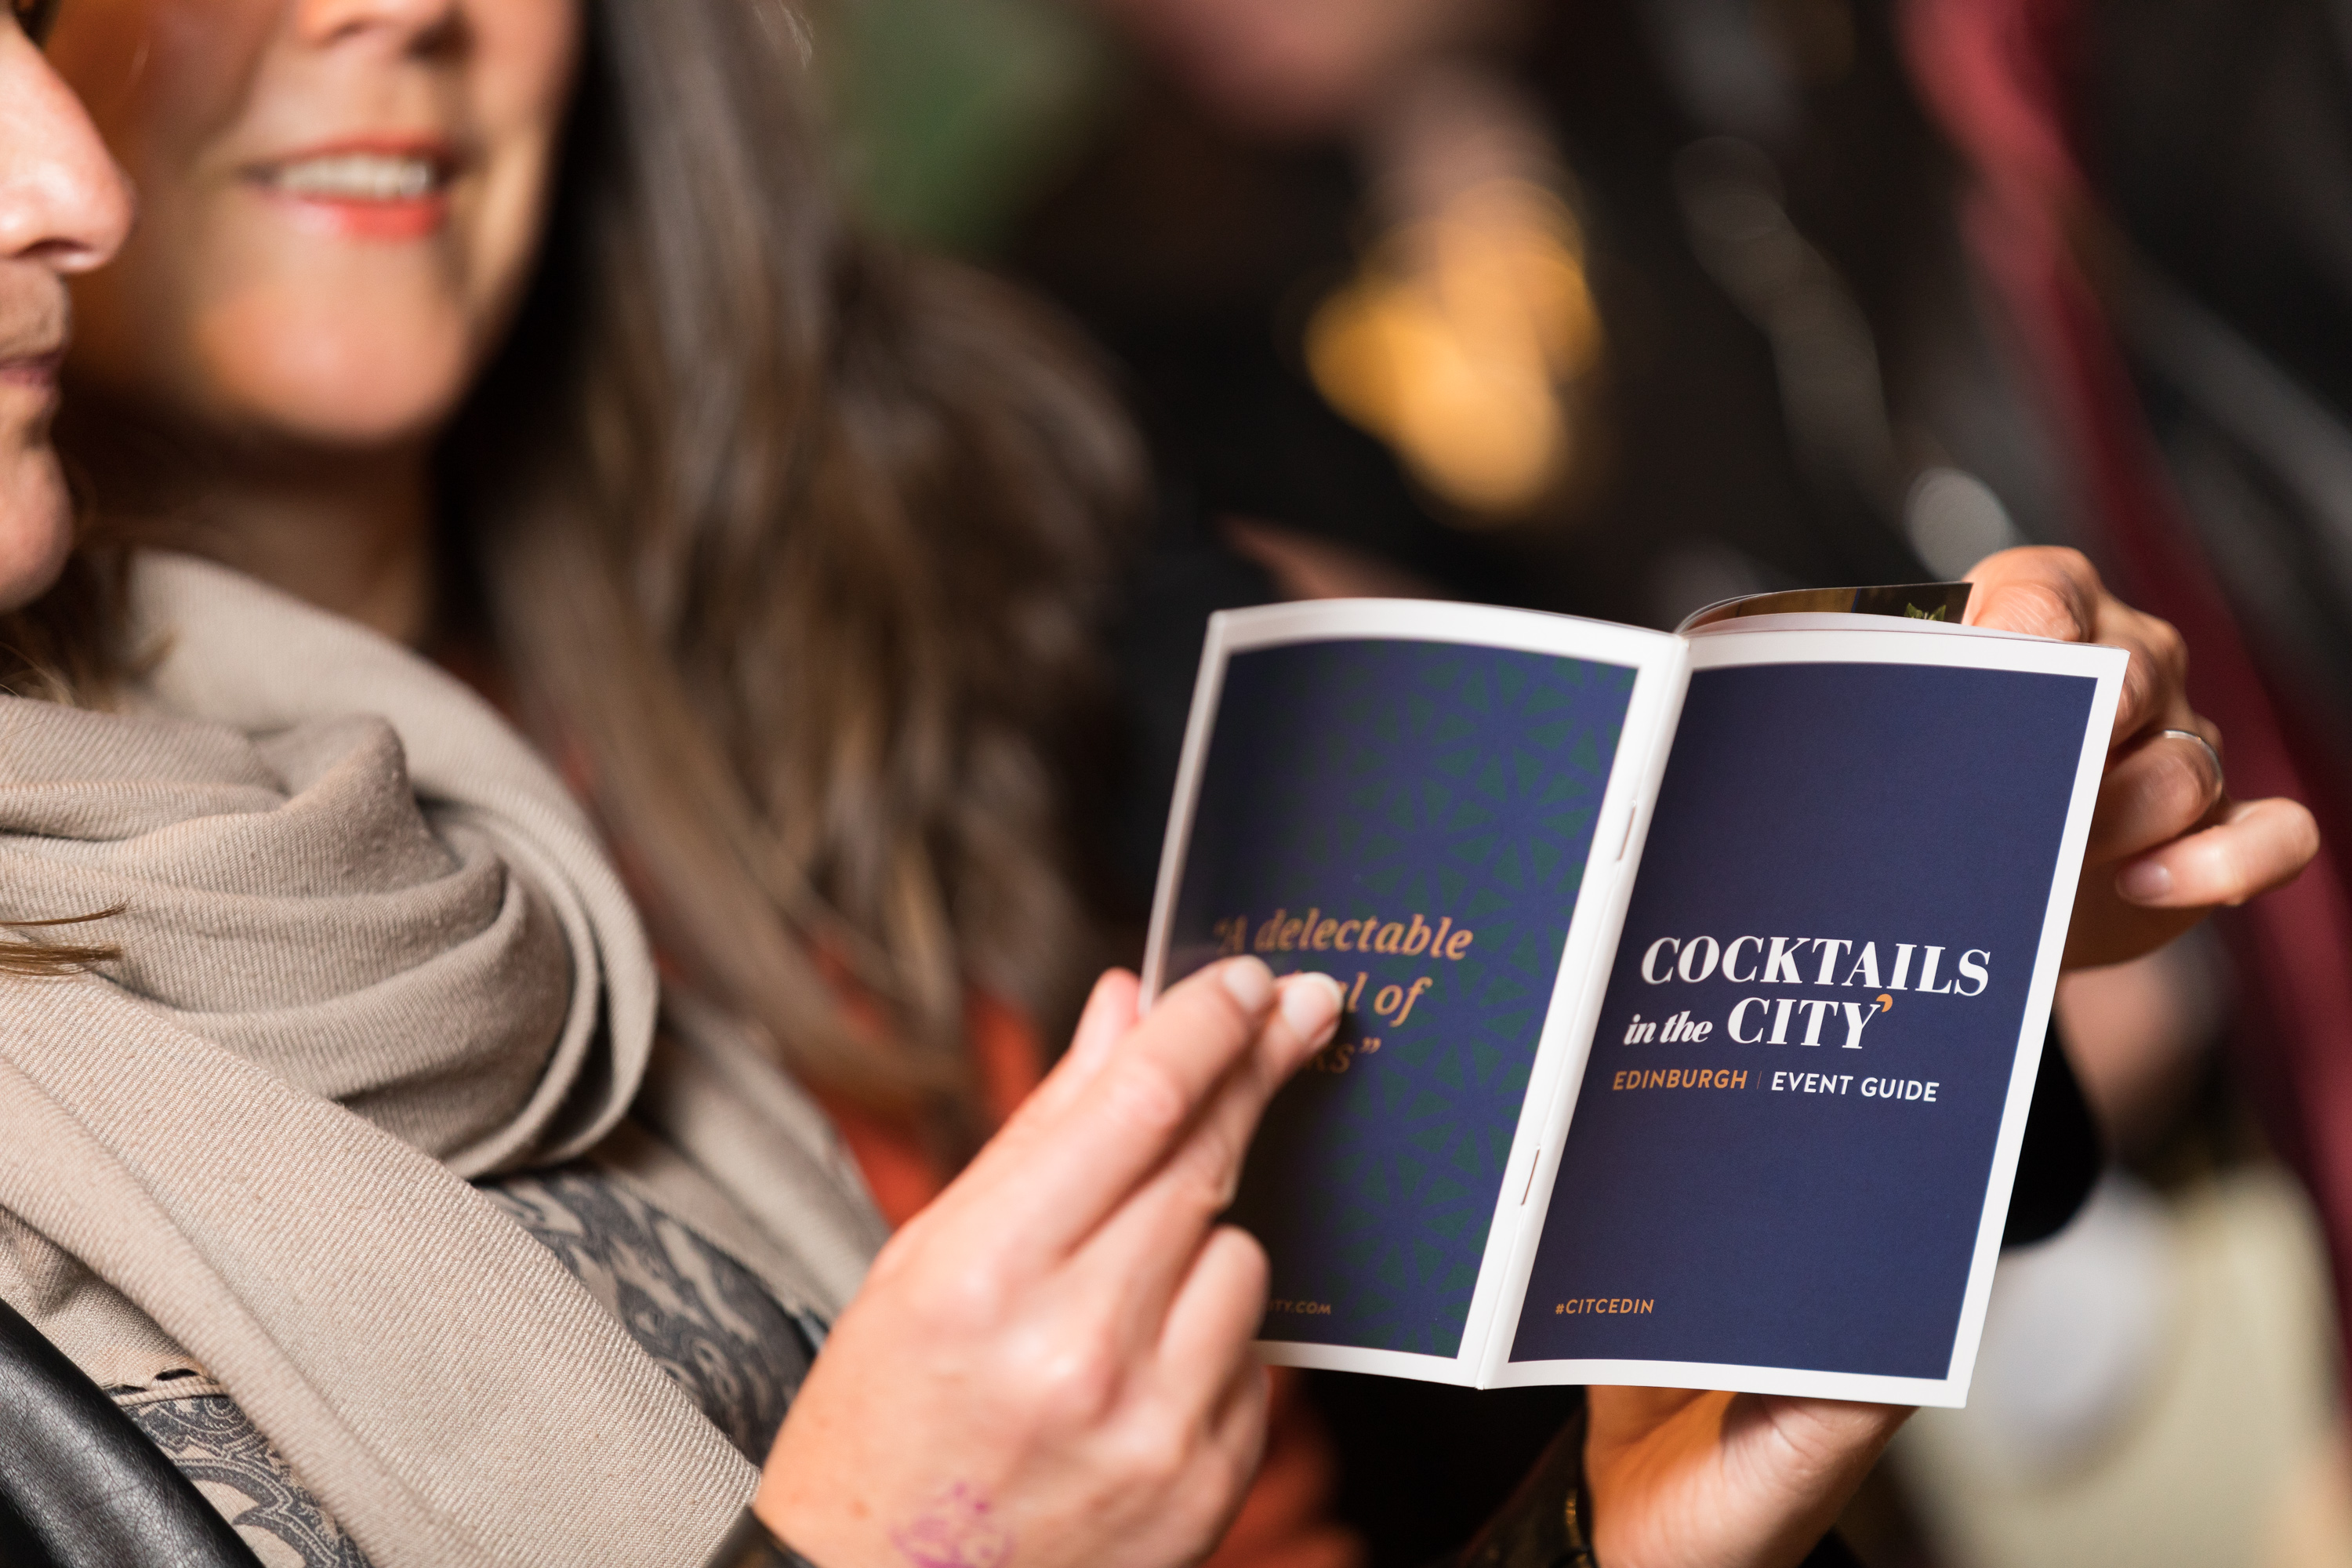 Cocktails in the City Edinburgh 2018